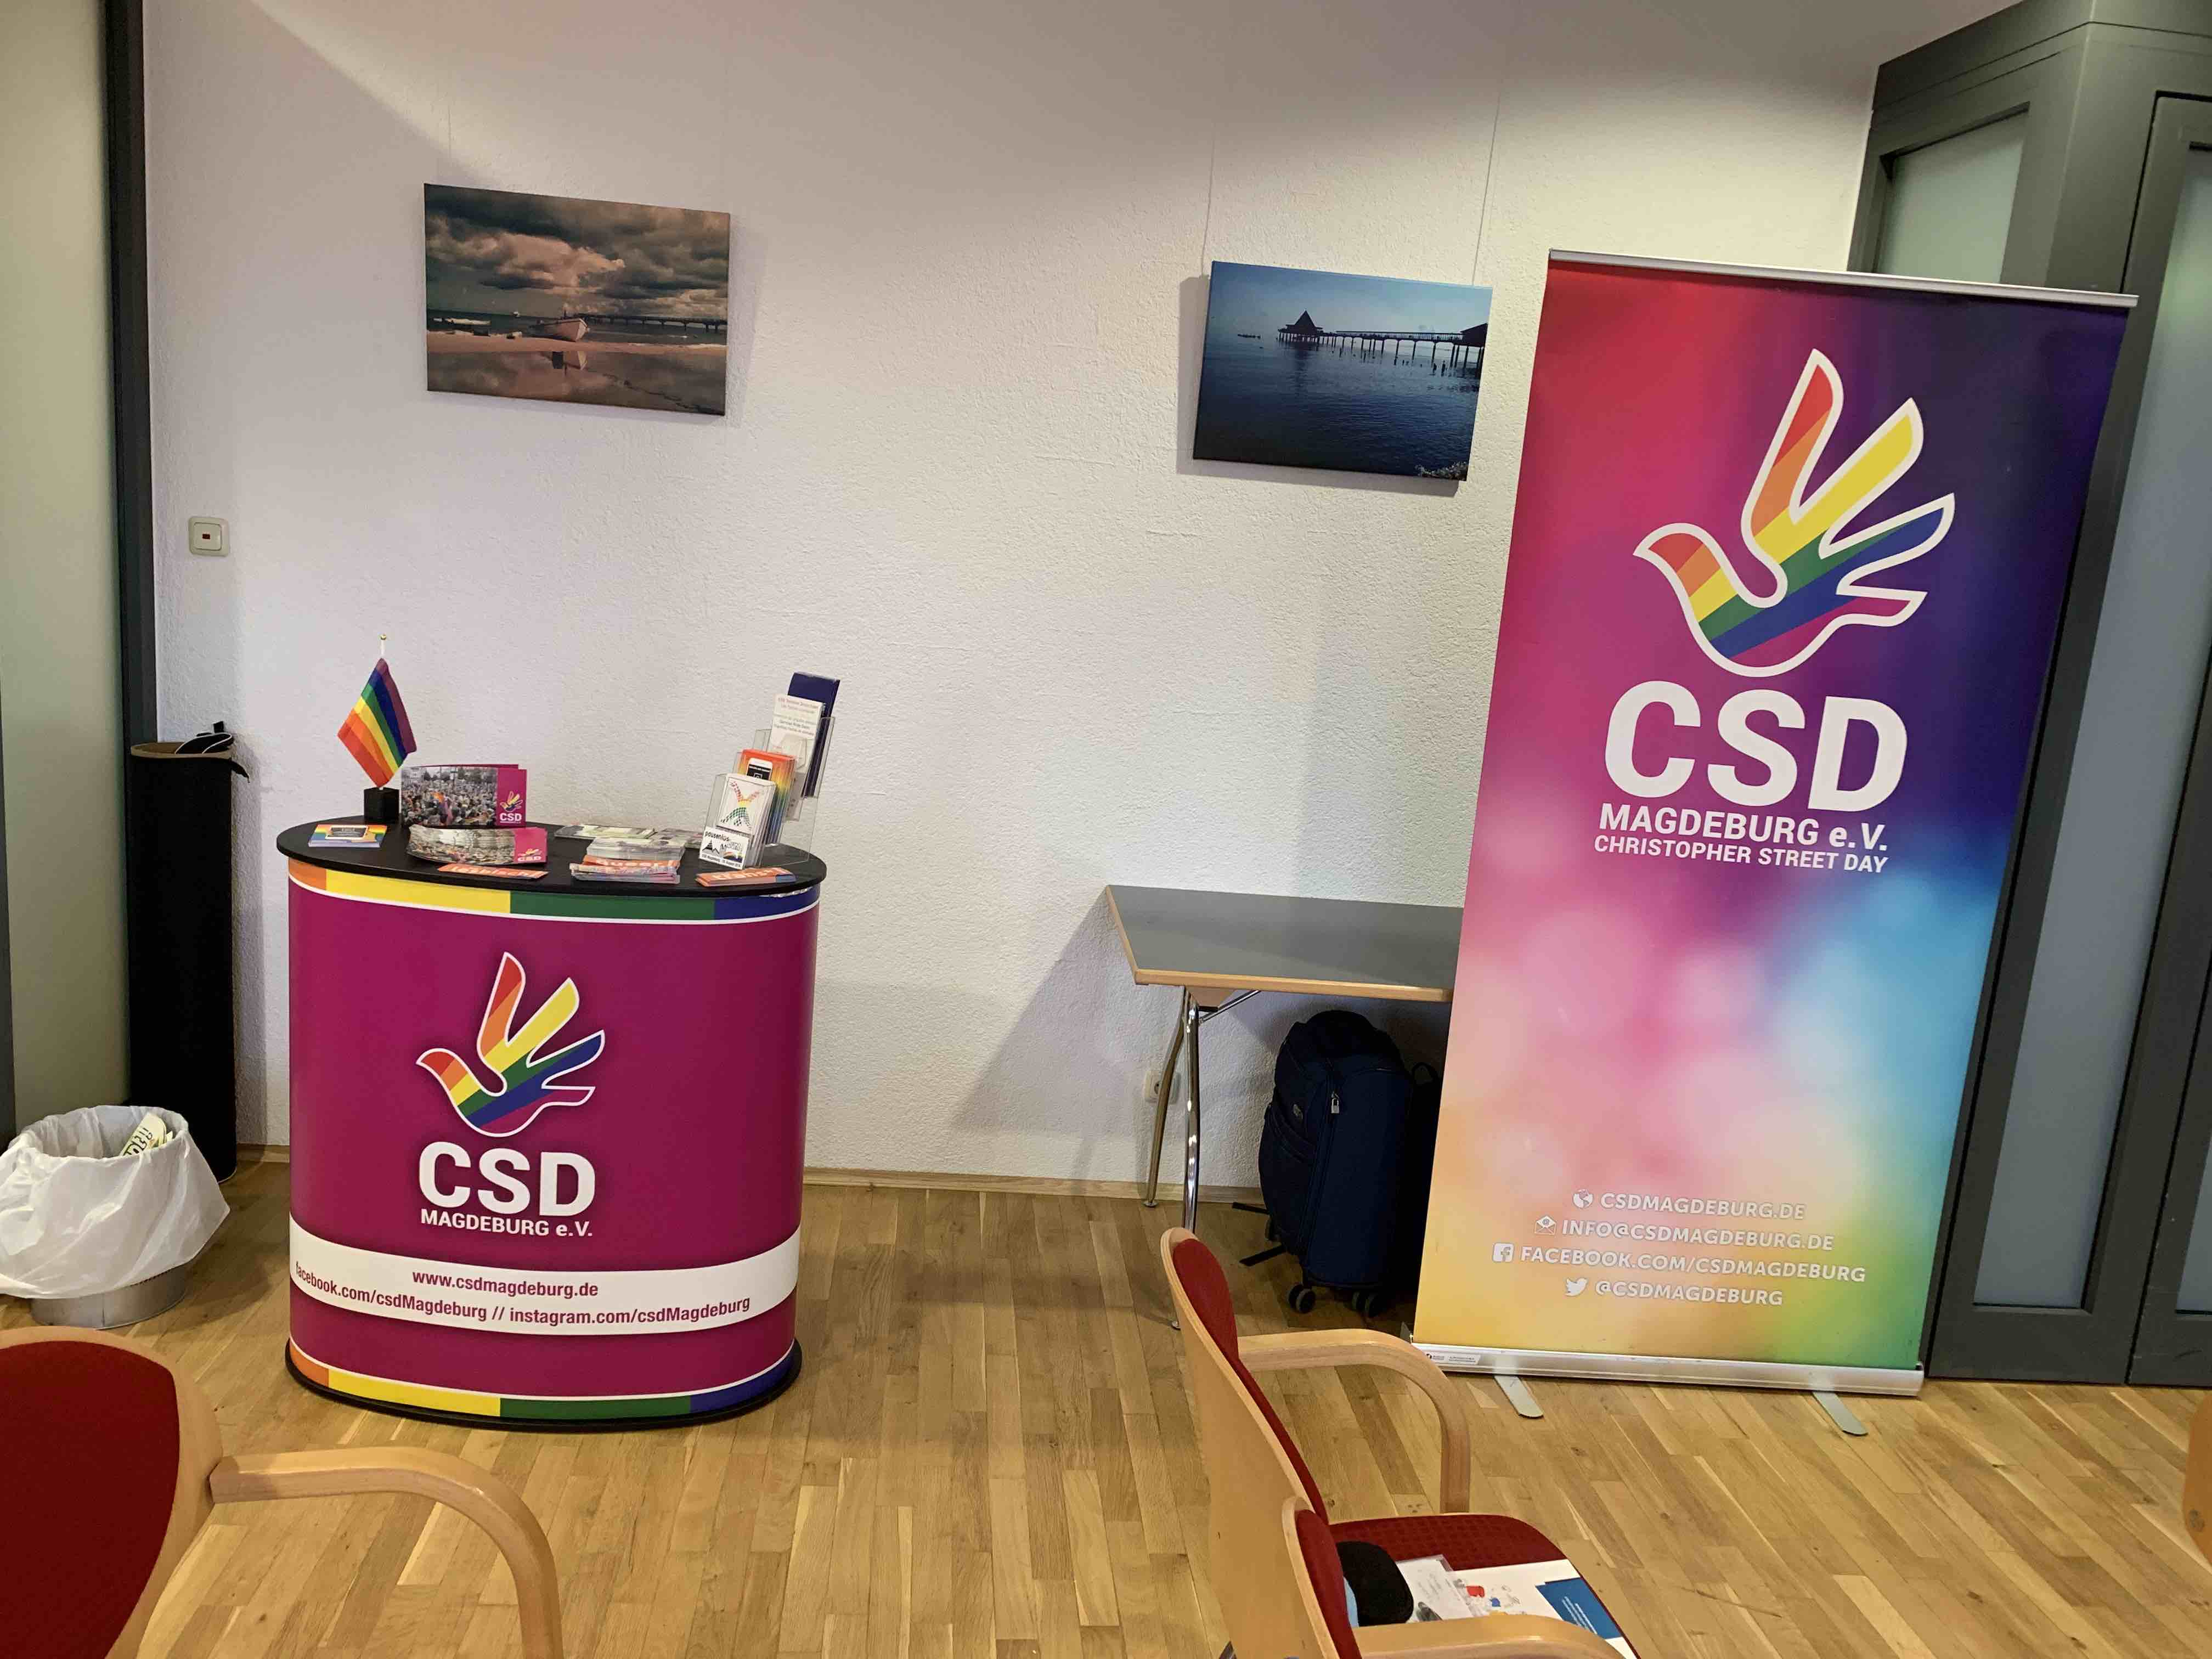 CSD Magdeburg stand